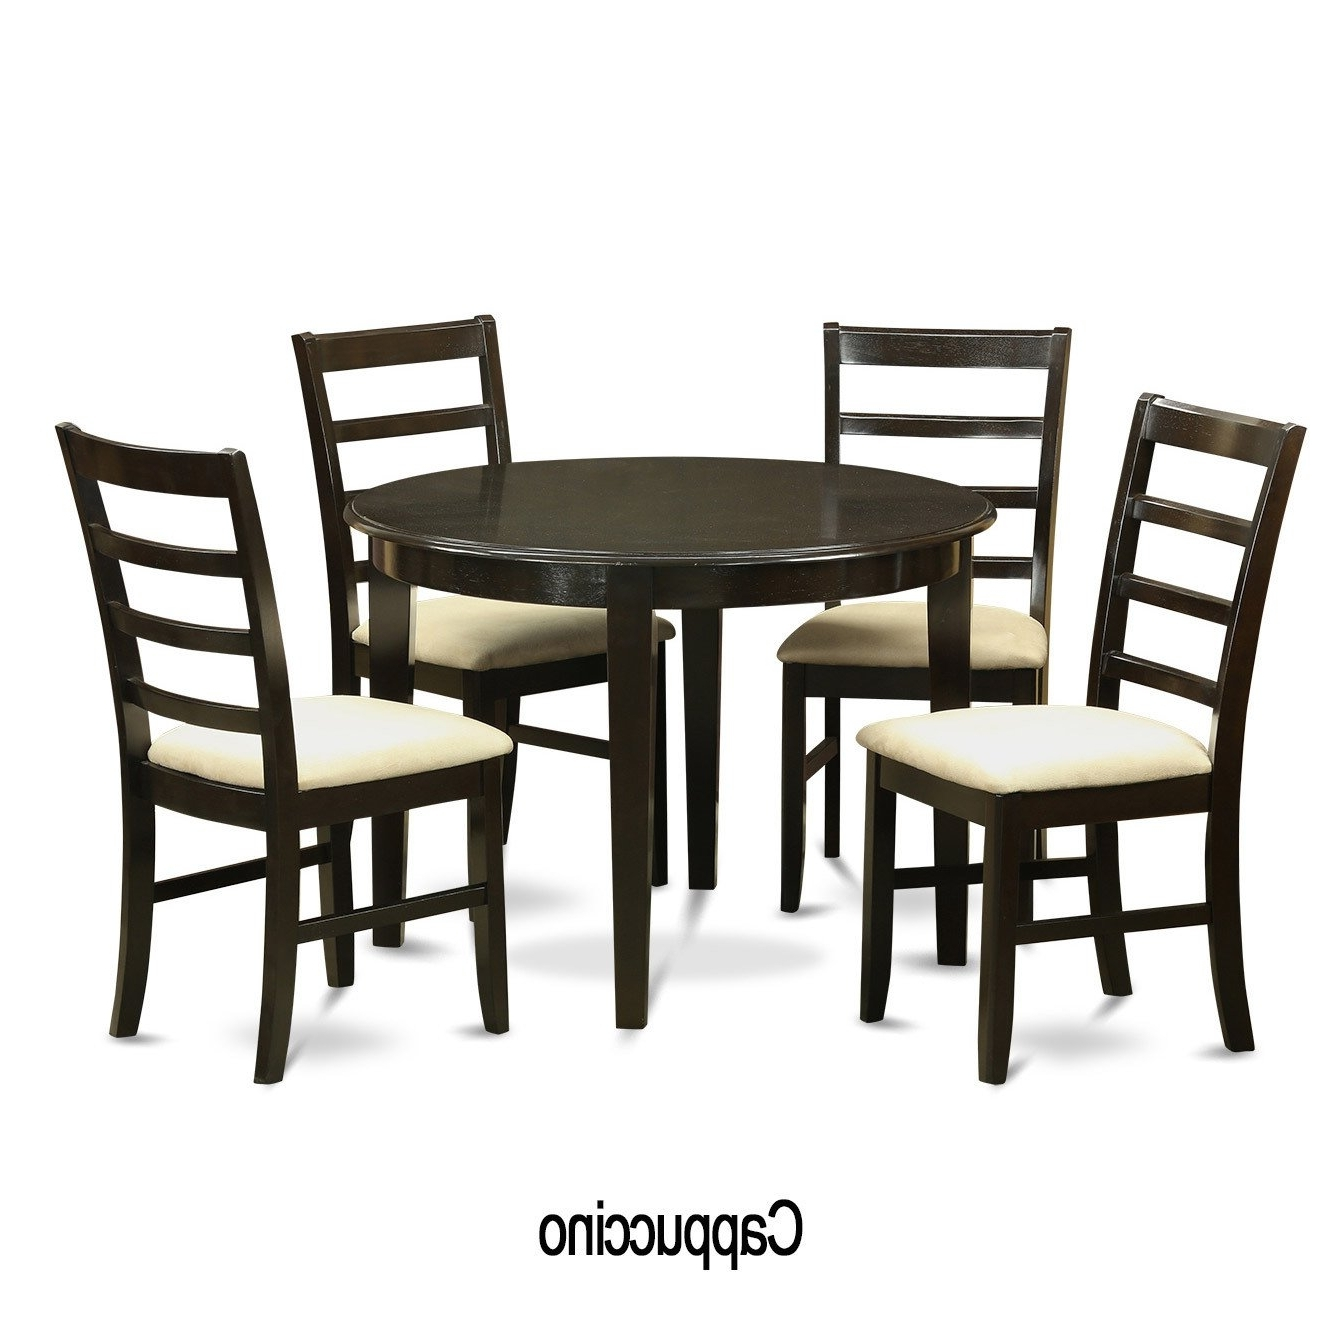 5 Piece Small Round Kitchen Table And 4 Dining Chairs – Free Throughout 2017 Small Round Dining Table With 4 Chairs (View 8 of 25)